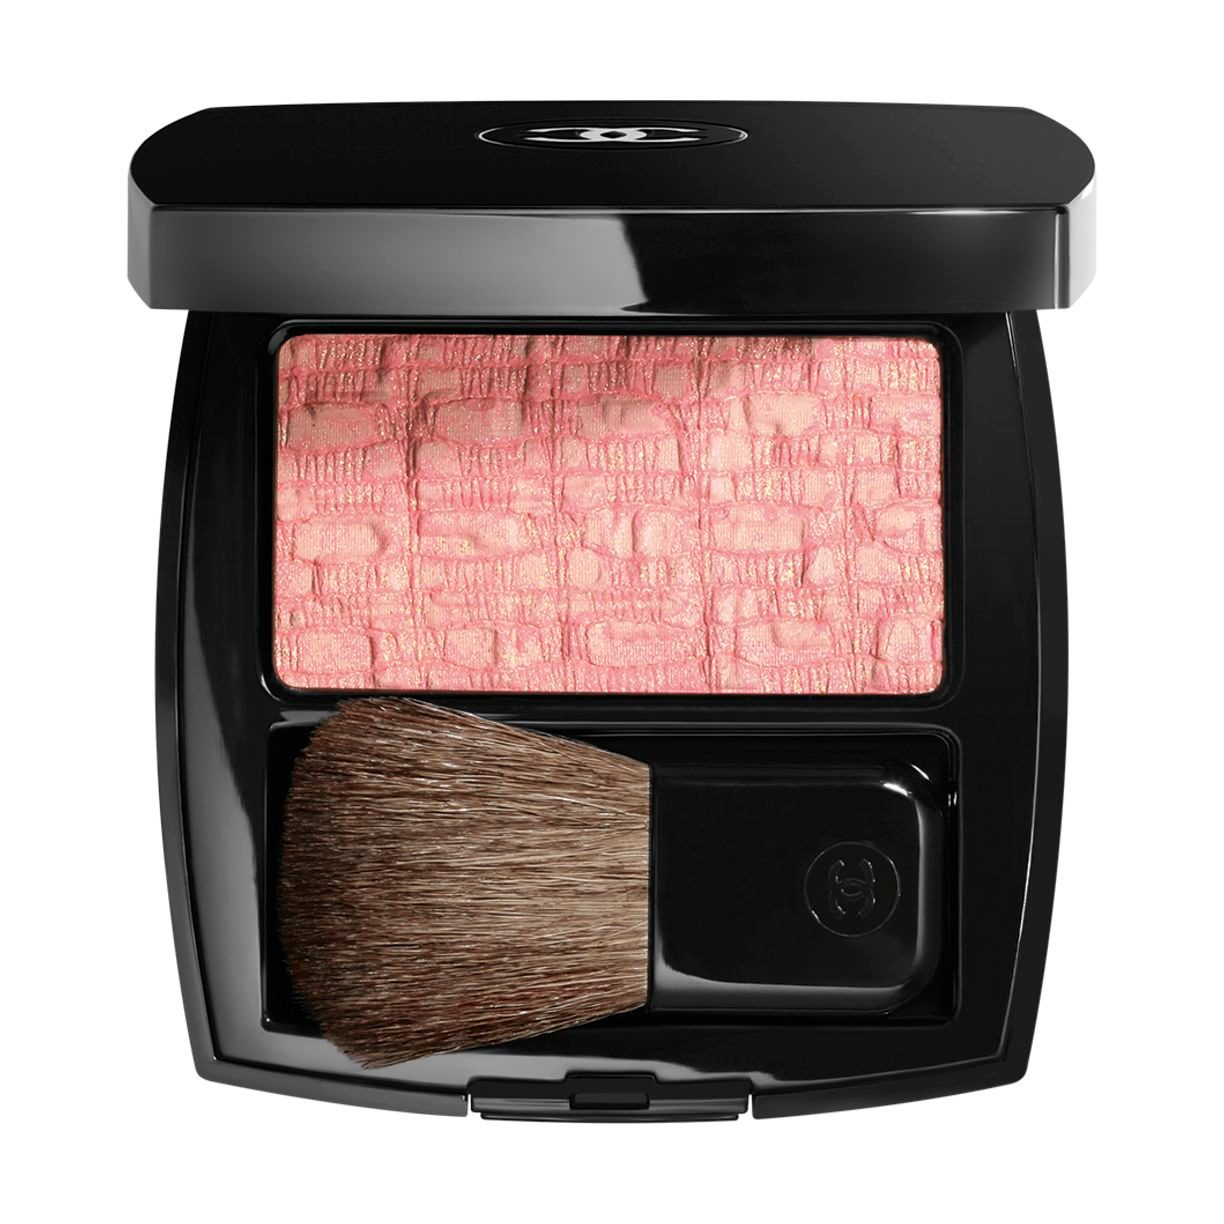 LES TISSAGES DE CHANEL 透亮雙色胭脂 10 - TWEED PINK